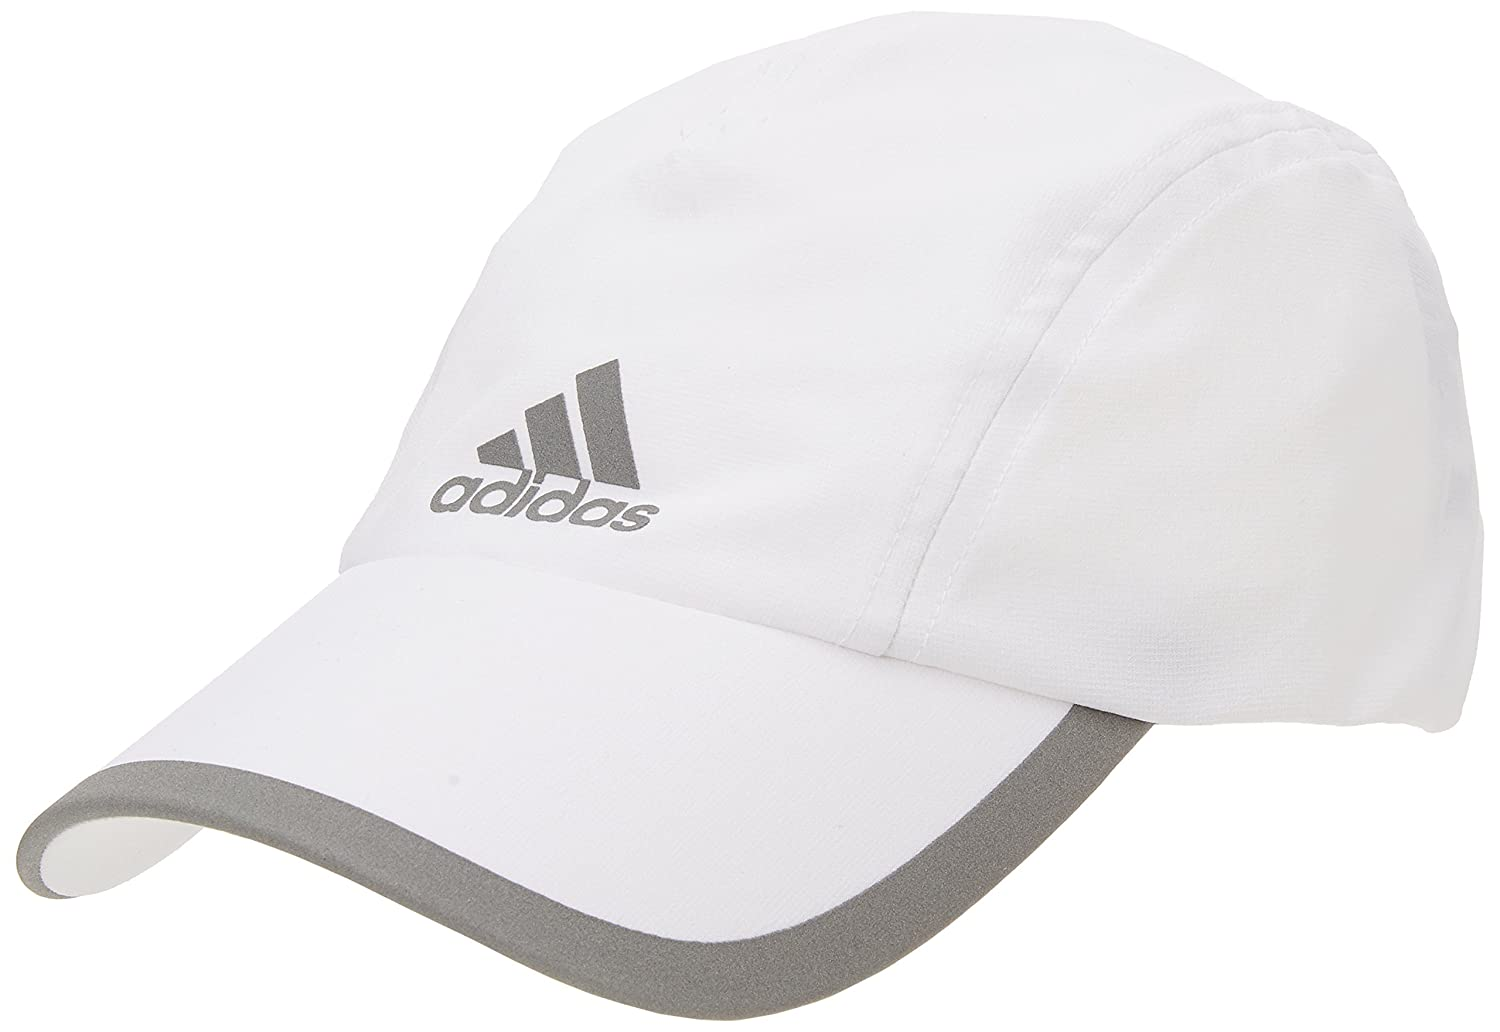 Adidas Women's Climalite Running Cap - White/White/Reflective Silver, One Size